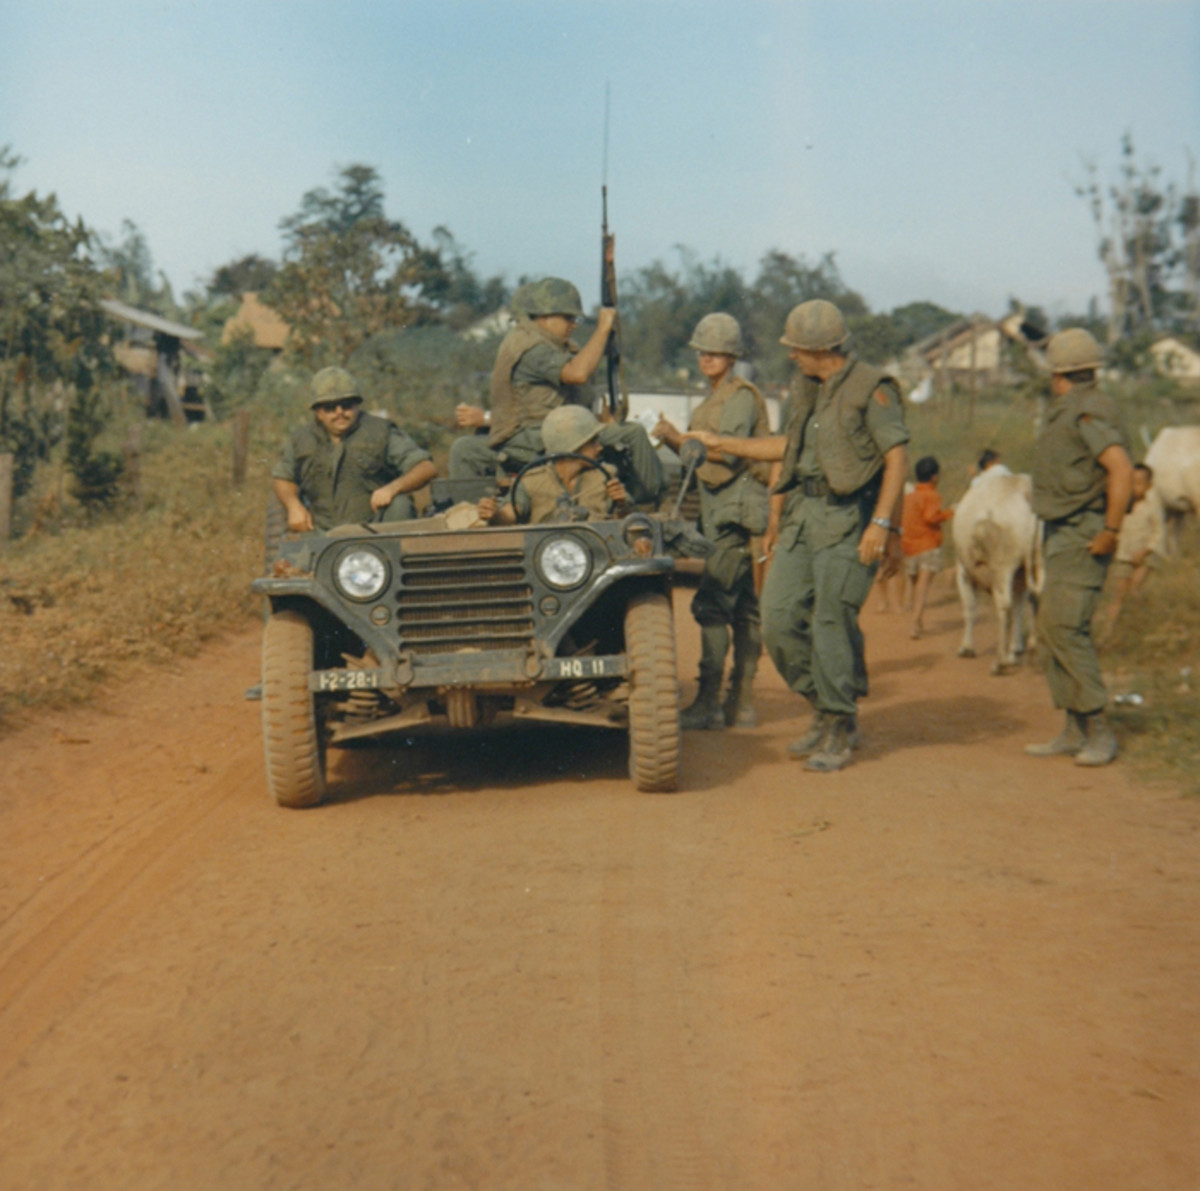 A First Infantry Division patrol, utilizing a M151A1, patrols a dusty road in Vietnam during 1969. The rear-down stance of the vehicle is indicative of its light load-carrying capacity and independent suspension.